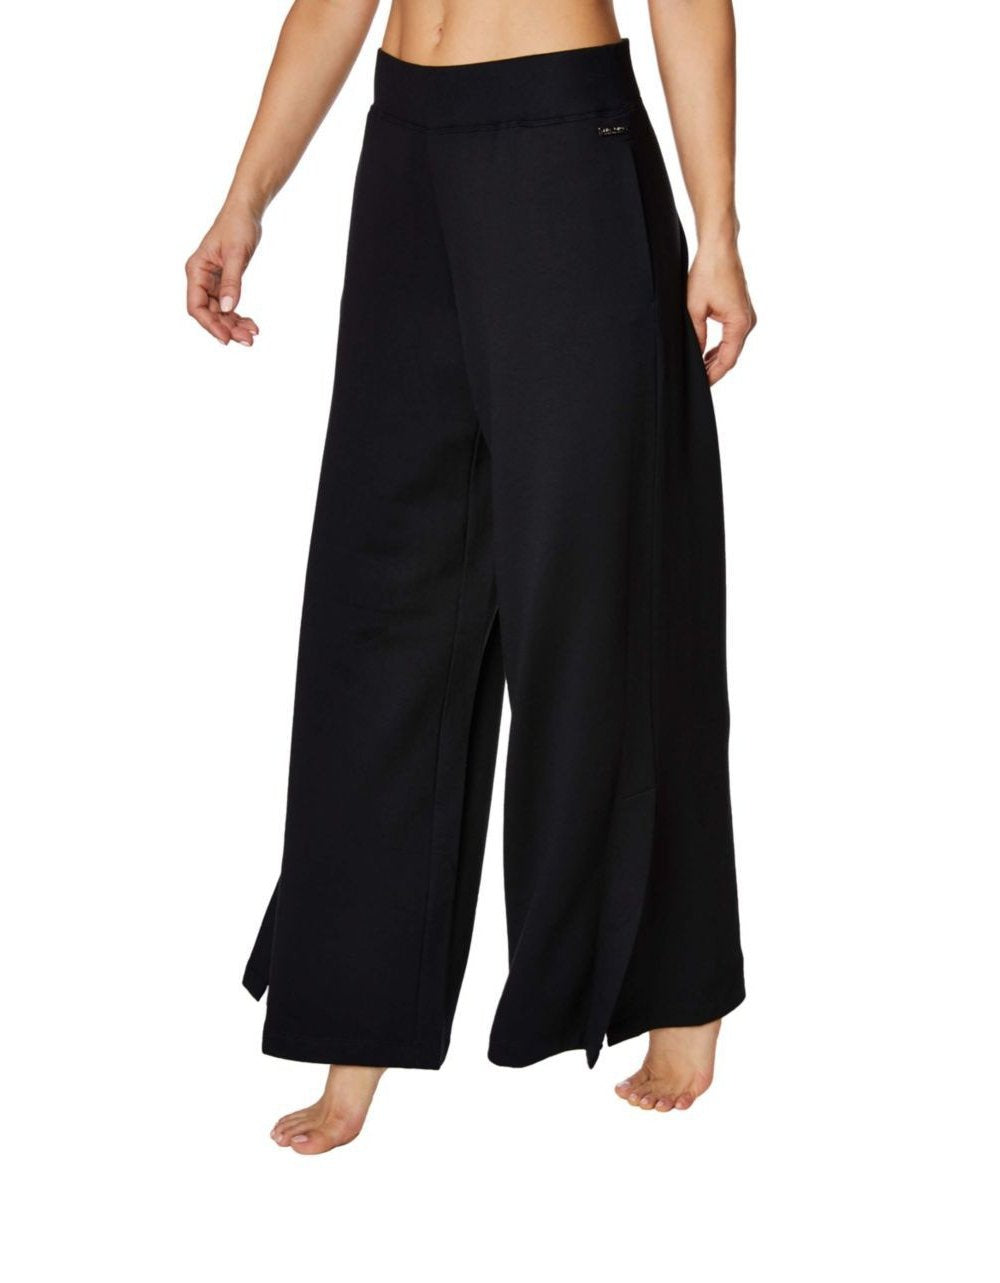 WIDE LEG PANT WITH SIDE SLITS BLACK - APPAREL - Betsey Johnson